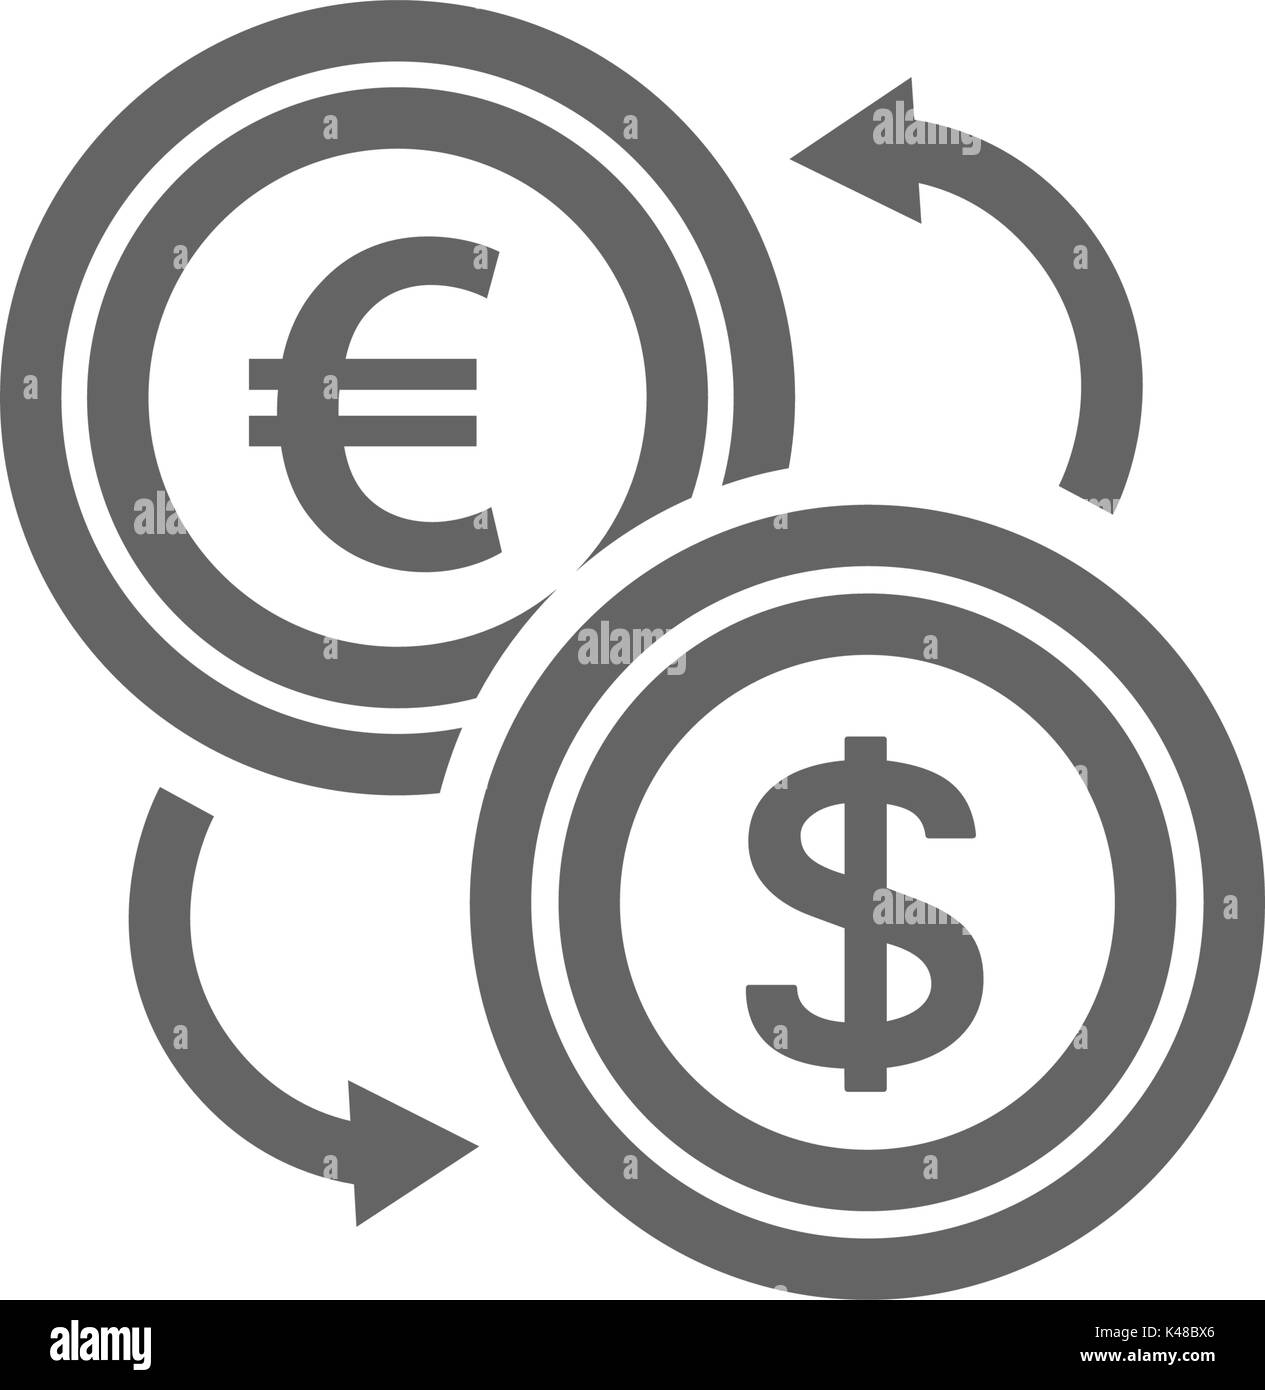 Convert currency stock photos convert currency stock images alamy simple currency converter line icon symbol and sign vector illustration design editable stroke biocorpaavc Gallery